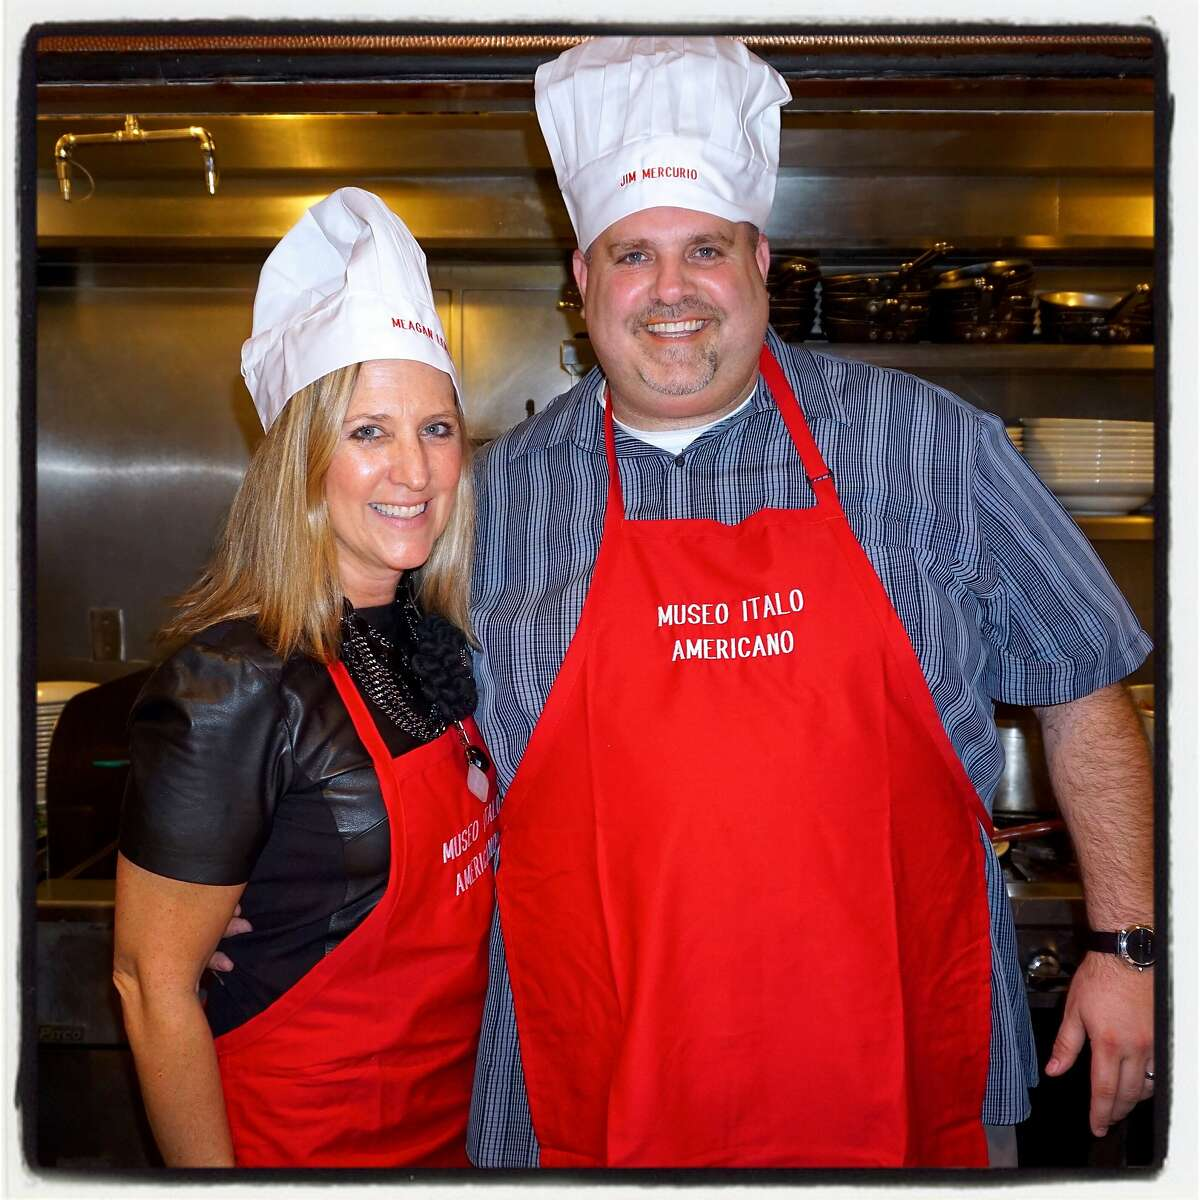 SF Park & Rec Commissioner Meagan Levitan (left) and Levi's Stadium Operations VP Jim Mercurio triumphed at Il Fornaio during the Museo Italo Americano's Pasta Cook-Off with their killer Bolognese. March 2016.